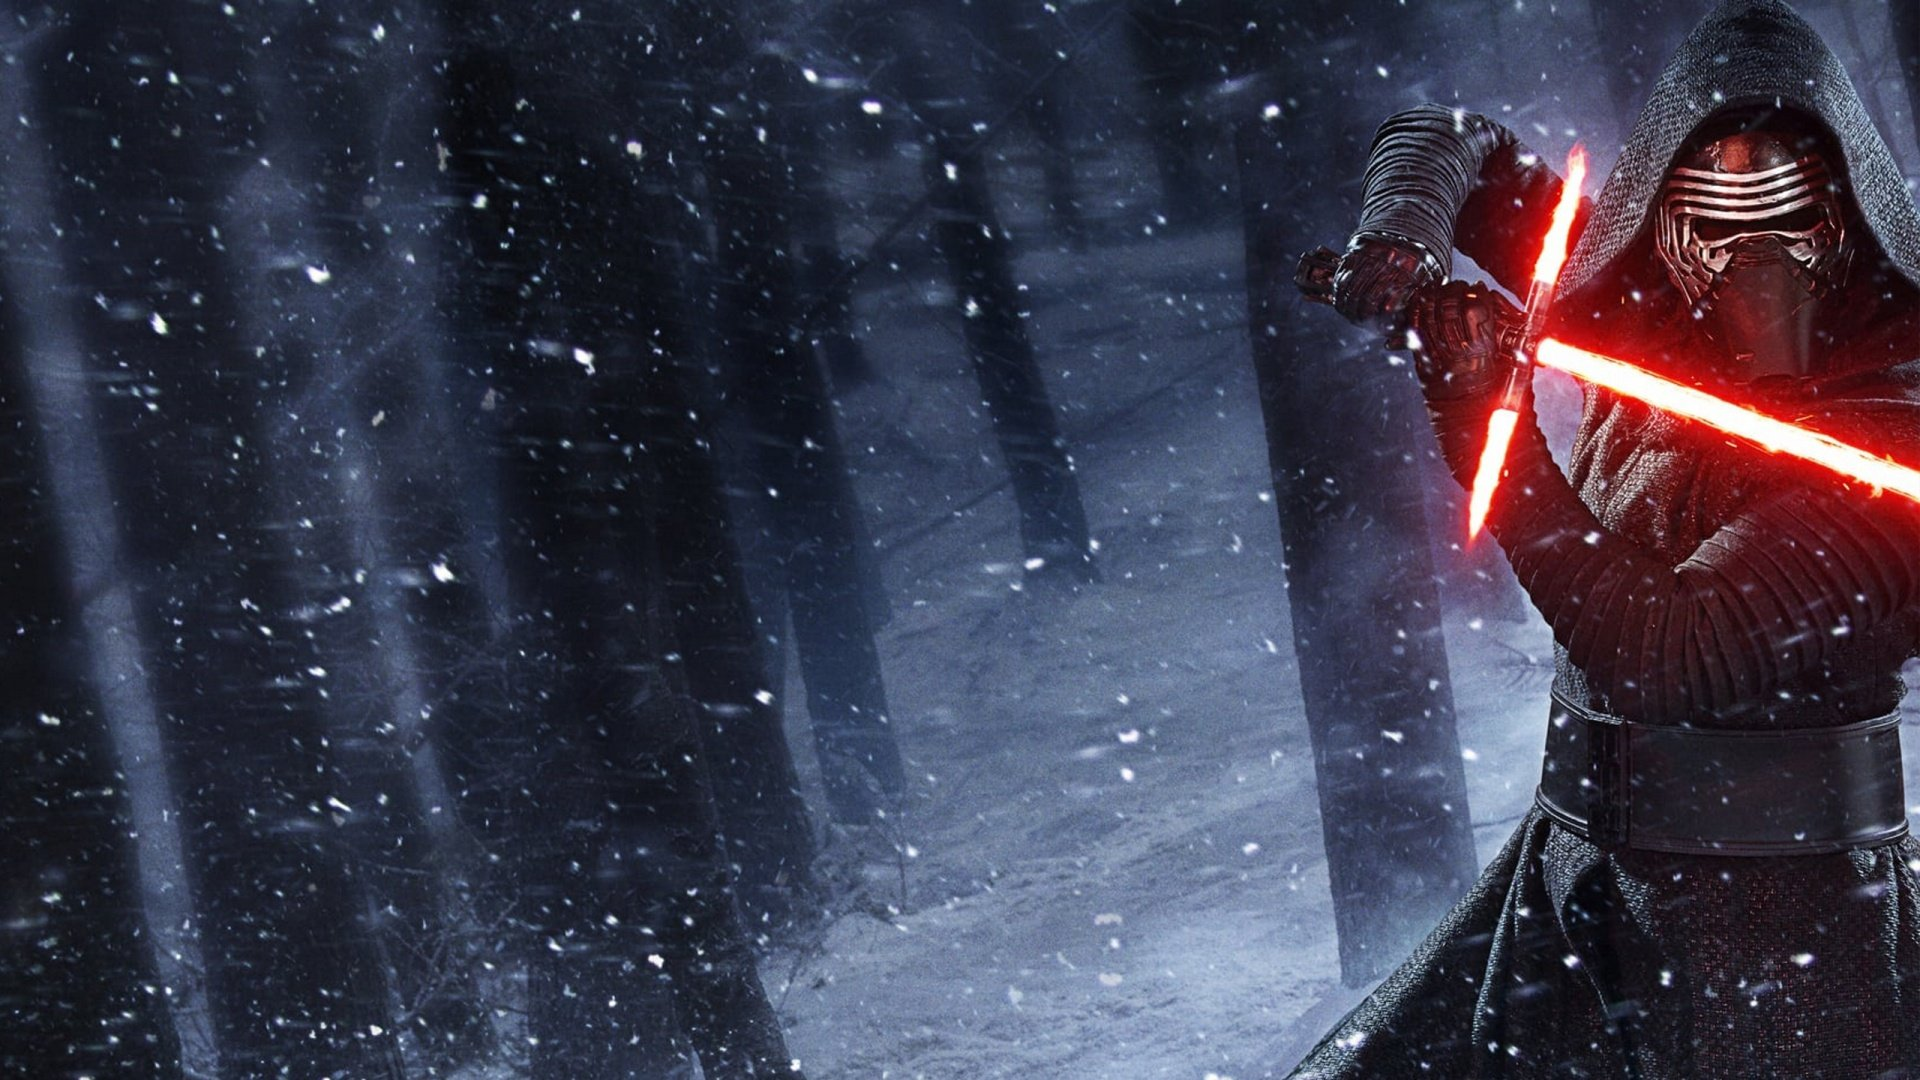 Kylo Ren Star Wars Lightsaber Wallpapers HD Wallpapers 1920x1080